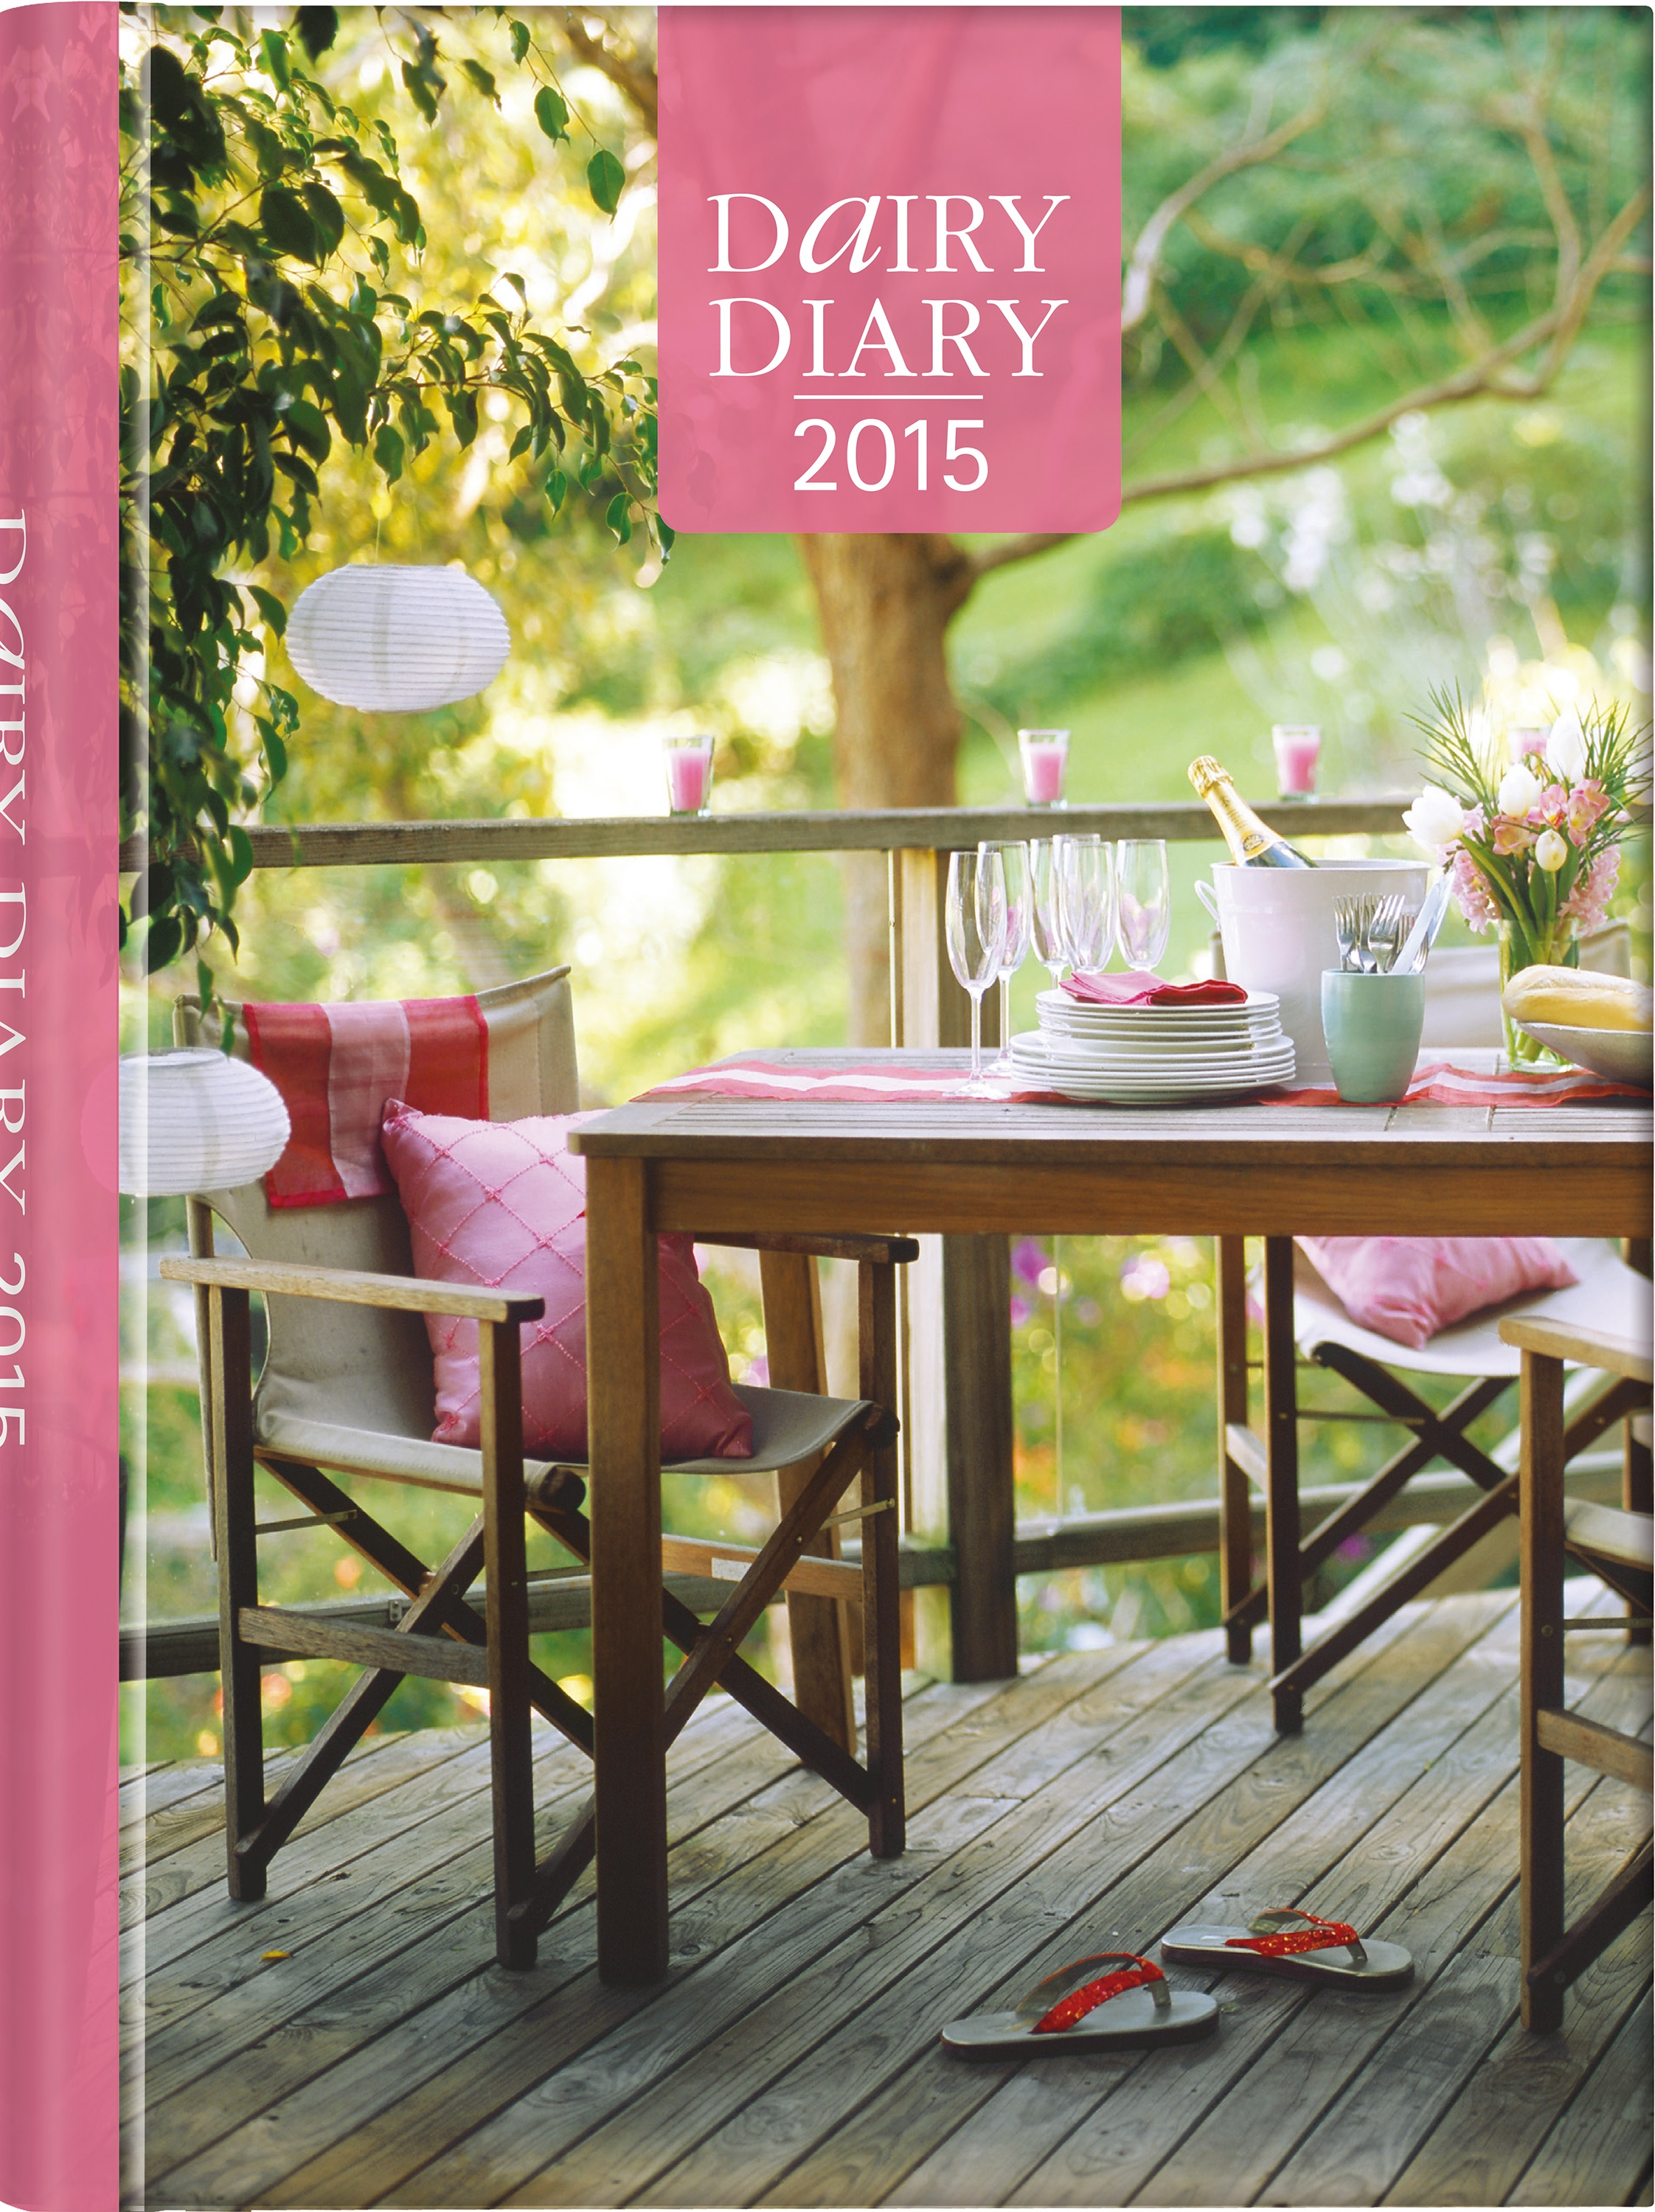 Dairy Diary 2015 cover low qual